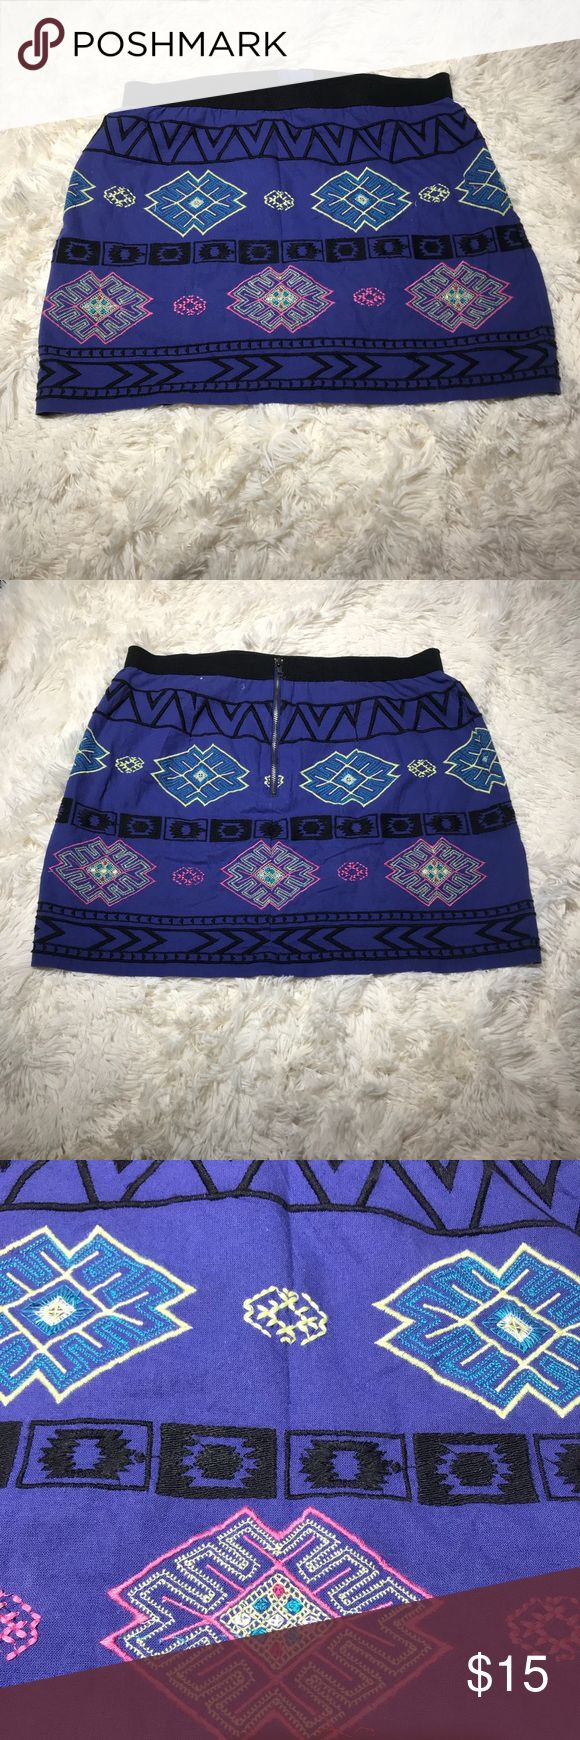 AMERICAN EAGLE OUTFITTERS mini skirt American Eagle Outfitters Aztec Mini Skirt.  Has elastic waist with zipper on the back.  Size 8. Purple with pink,blue,black and yellow design.  EUC.  Approx measurements waist 15, length 15.  Loc A147. American Eagle Outfitters Skirts Mini